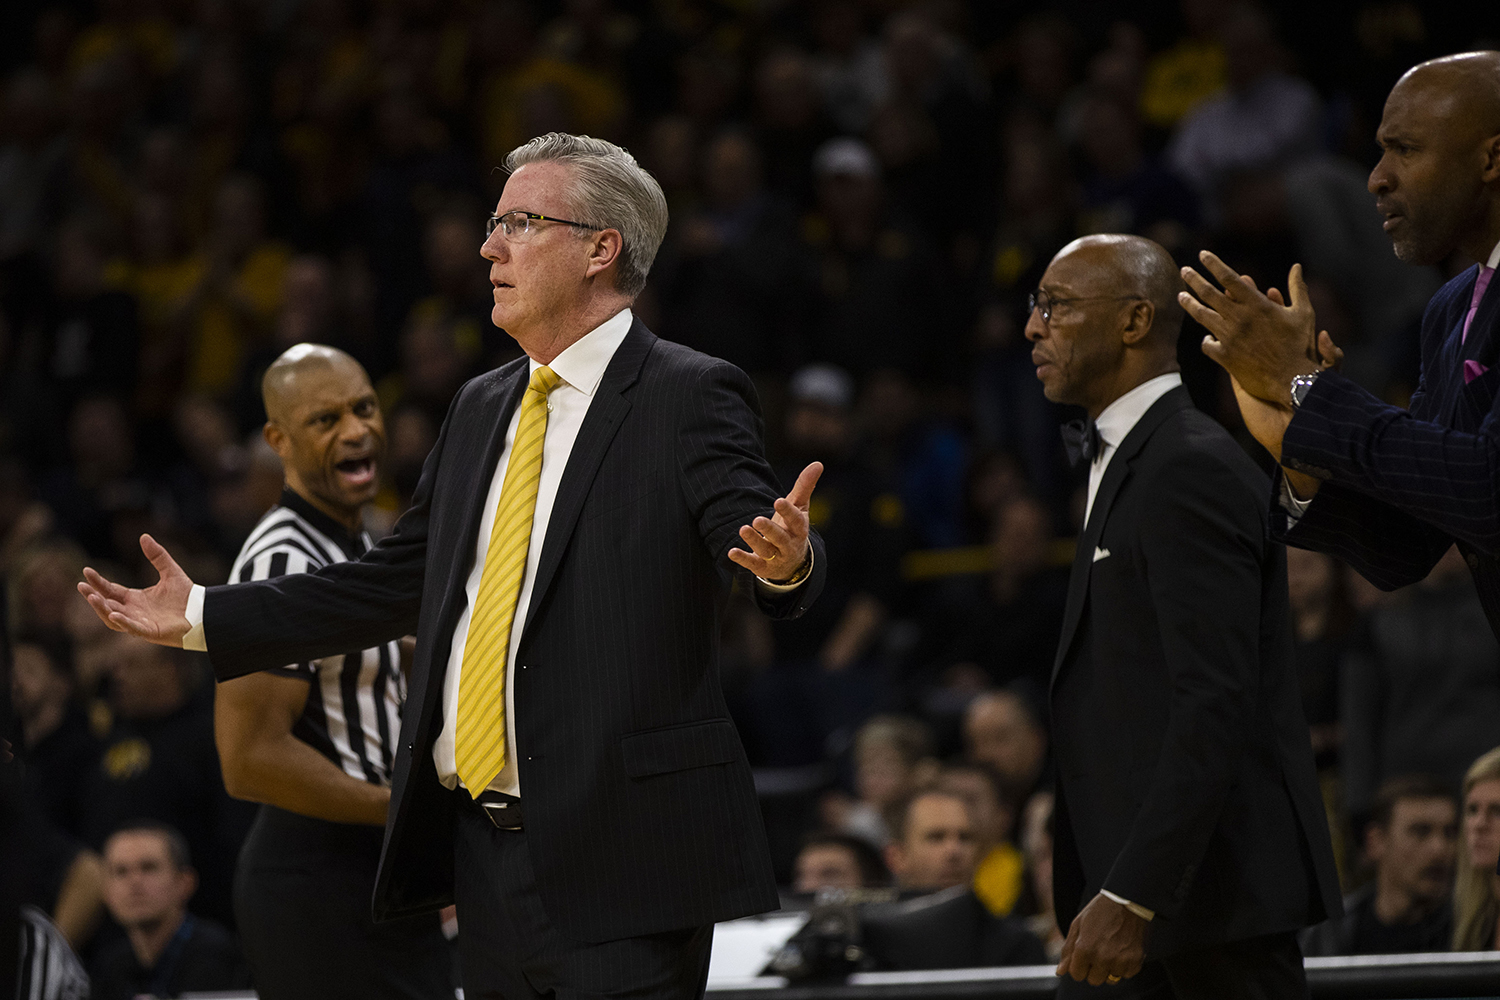 Iowa+head+coach+Fran+McCaffery+gestures+during+the+Iowa%2FMichigan+men%27s+basketball+game+at+Carver-Hawkeye+Arena+on+Friday%2C+February+1%2C+2019.+The+Hawkeyes+took+down+the+No.+5+ranked+Wolverines%2C+74-59.+